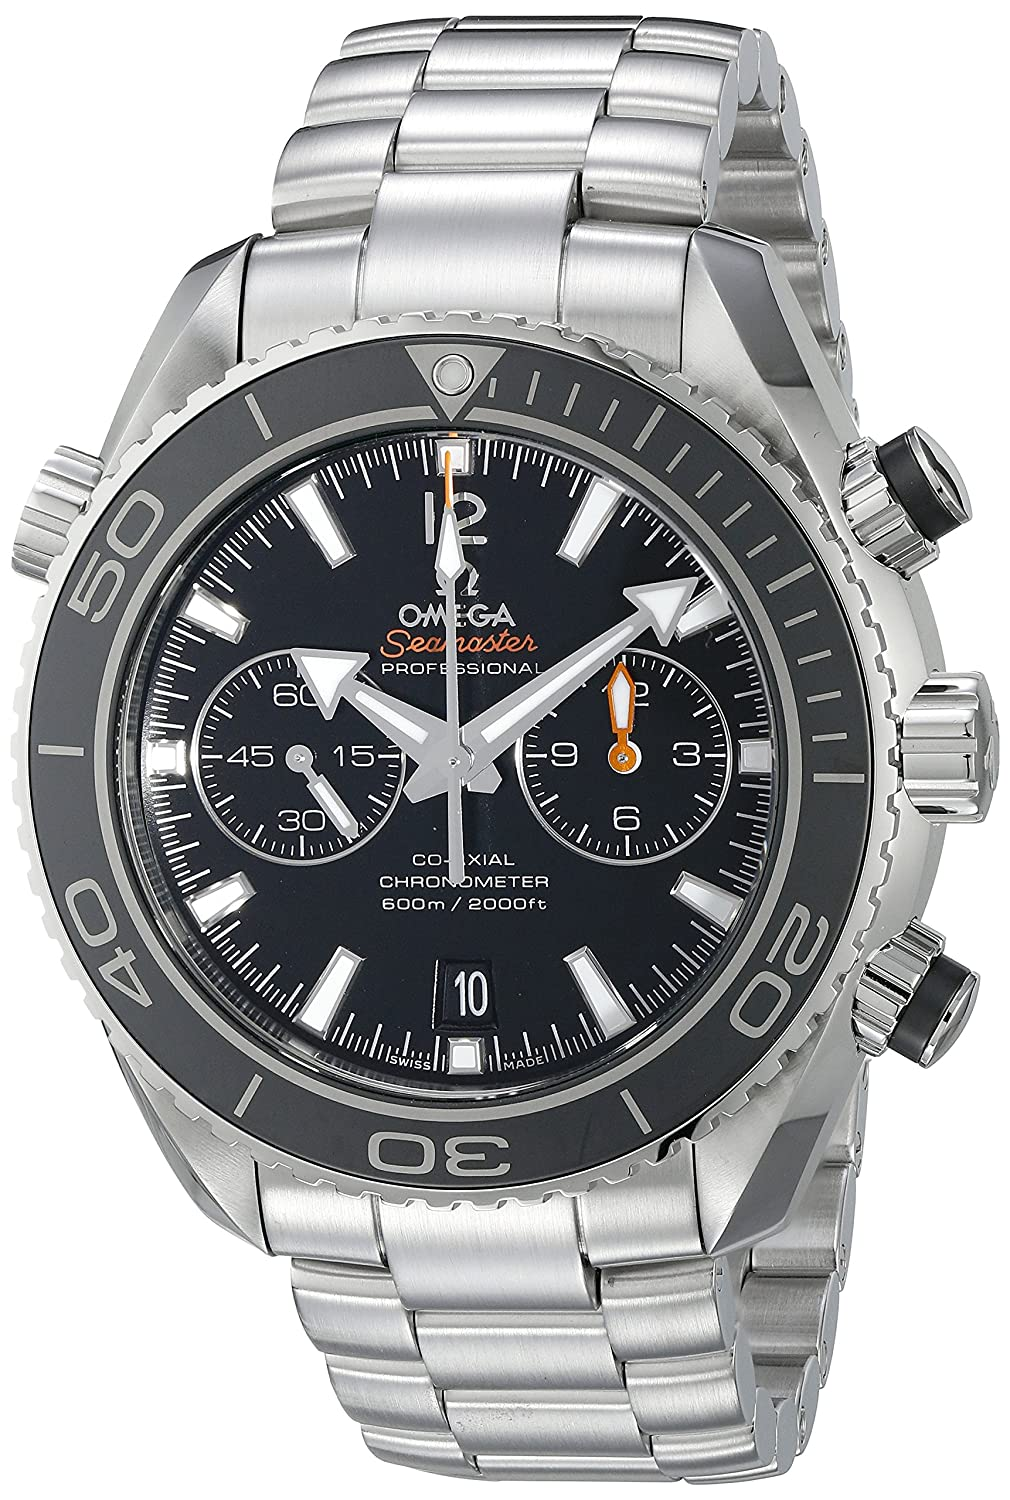 Omega Seamaster Planet Ocean - Reloj (Reloj de Pulsera, Masculino, Acero Inoxidable, Acero Inoxidable, Acero Inoxidable, Acero Inoxidable): Amazon.es: ...